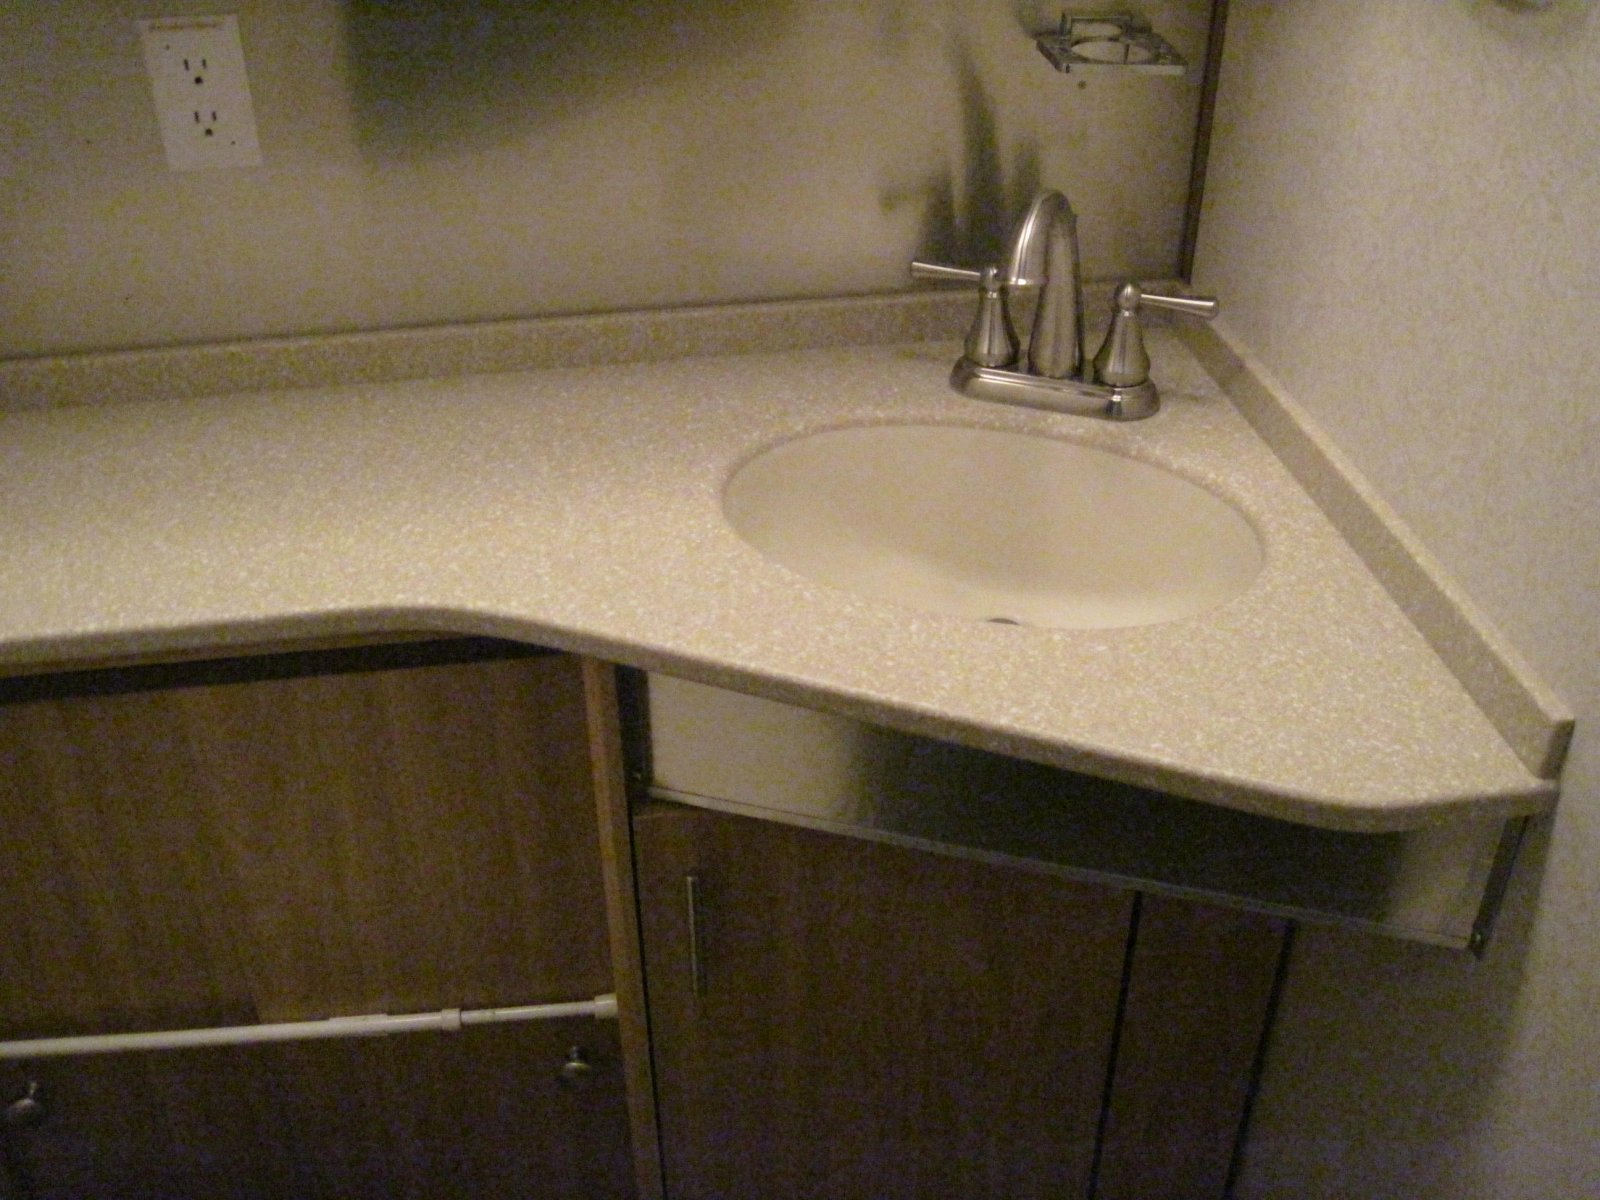 Click image for larger version  Name:NewBathroom.jpg Views:114 Size:295.4 KB ID:102580